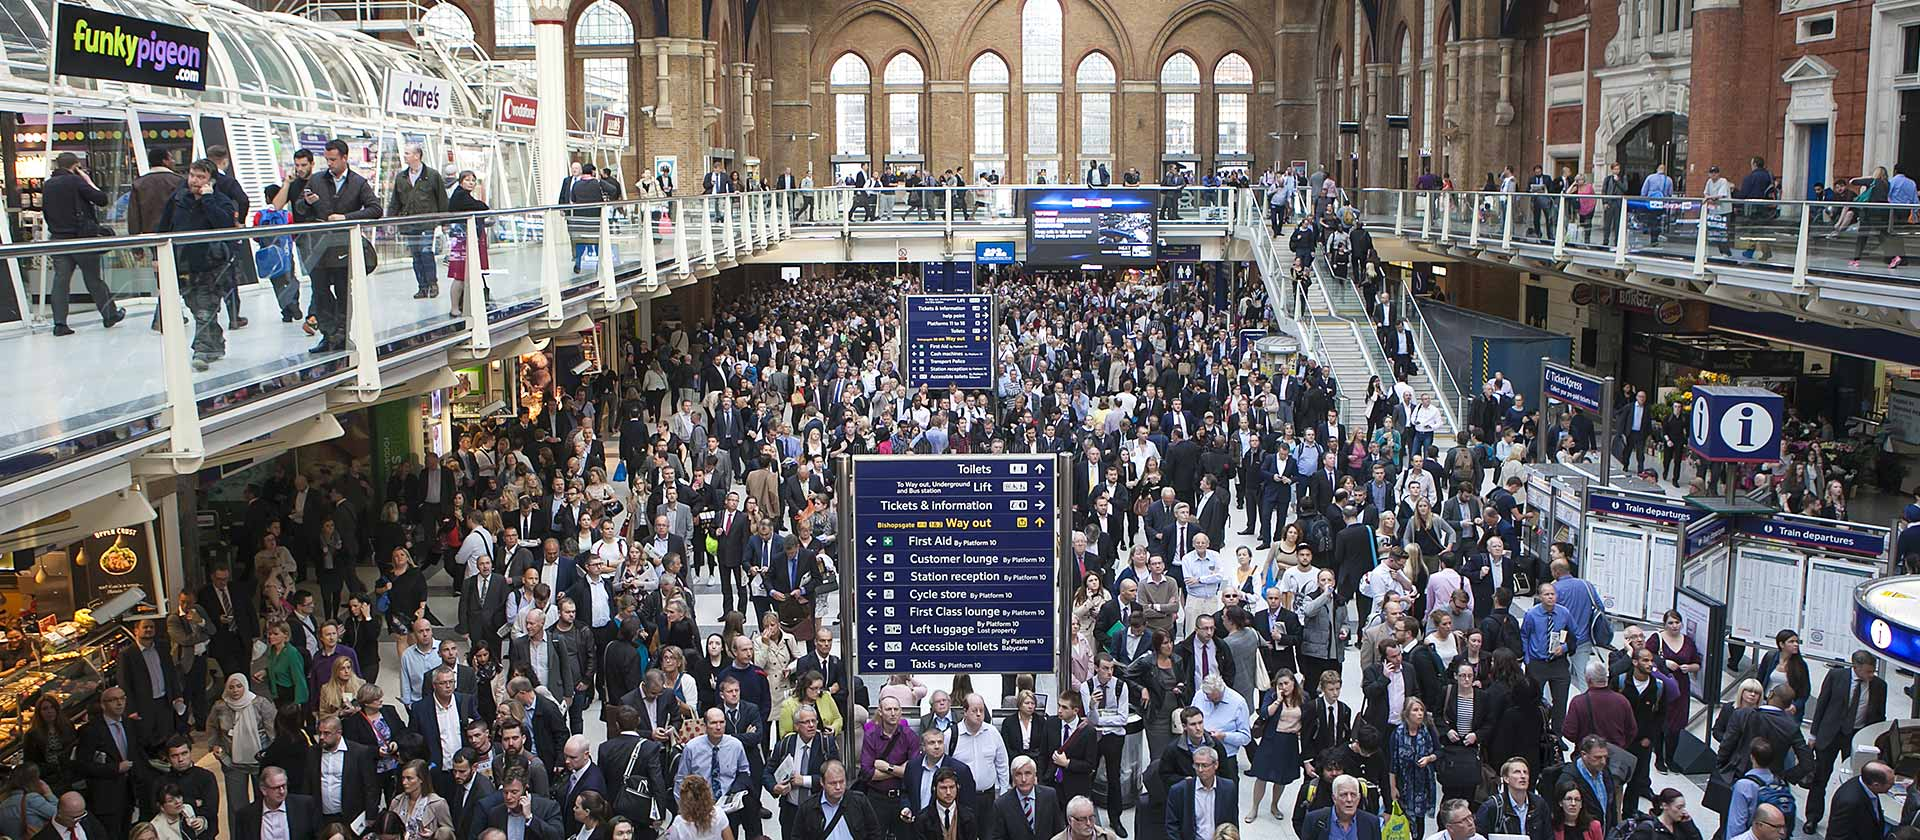 Should HR be lenient with commuters arriving late?